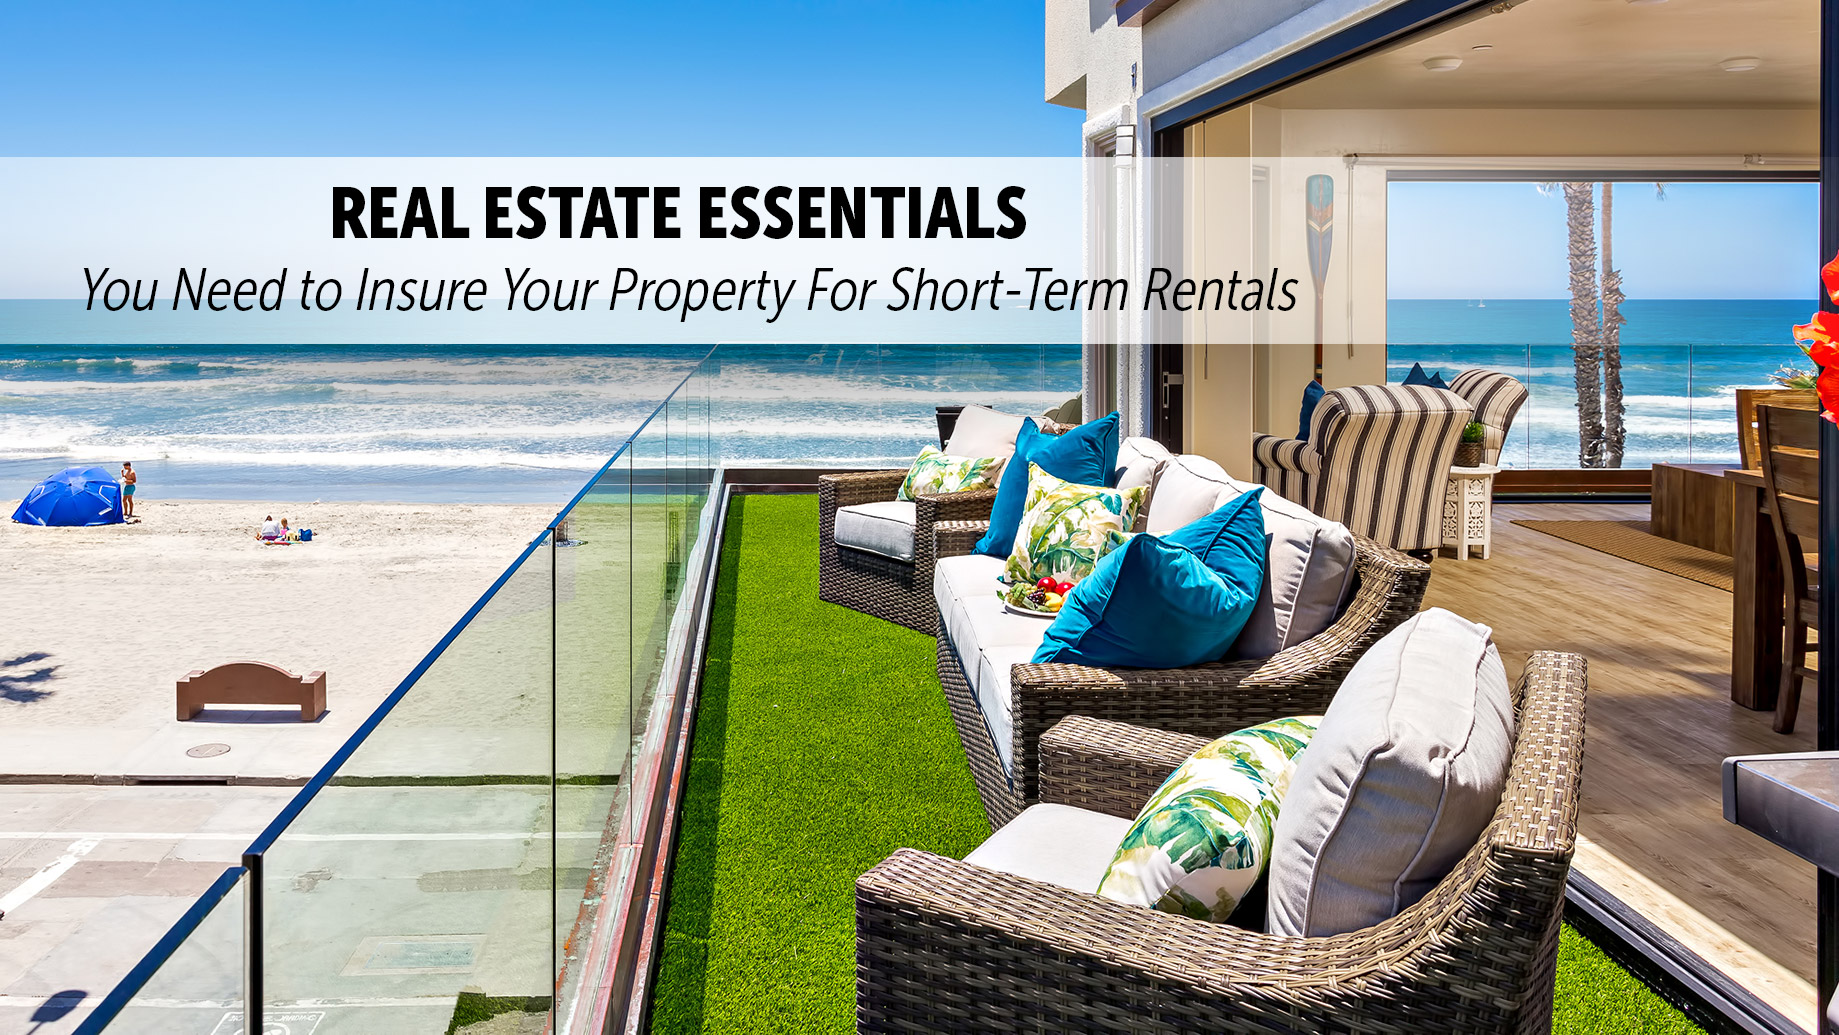 Real Estate Essentials - You Need to Insure Your Property For Short Term Rentals